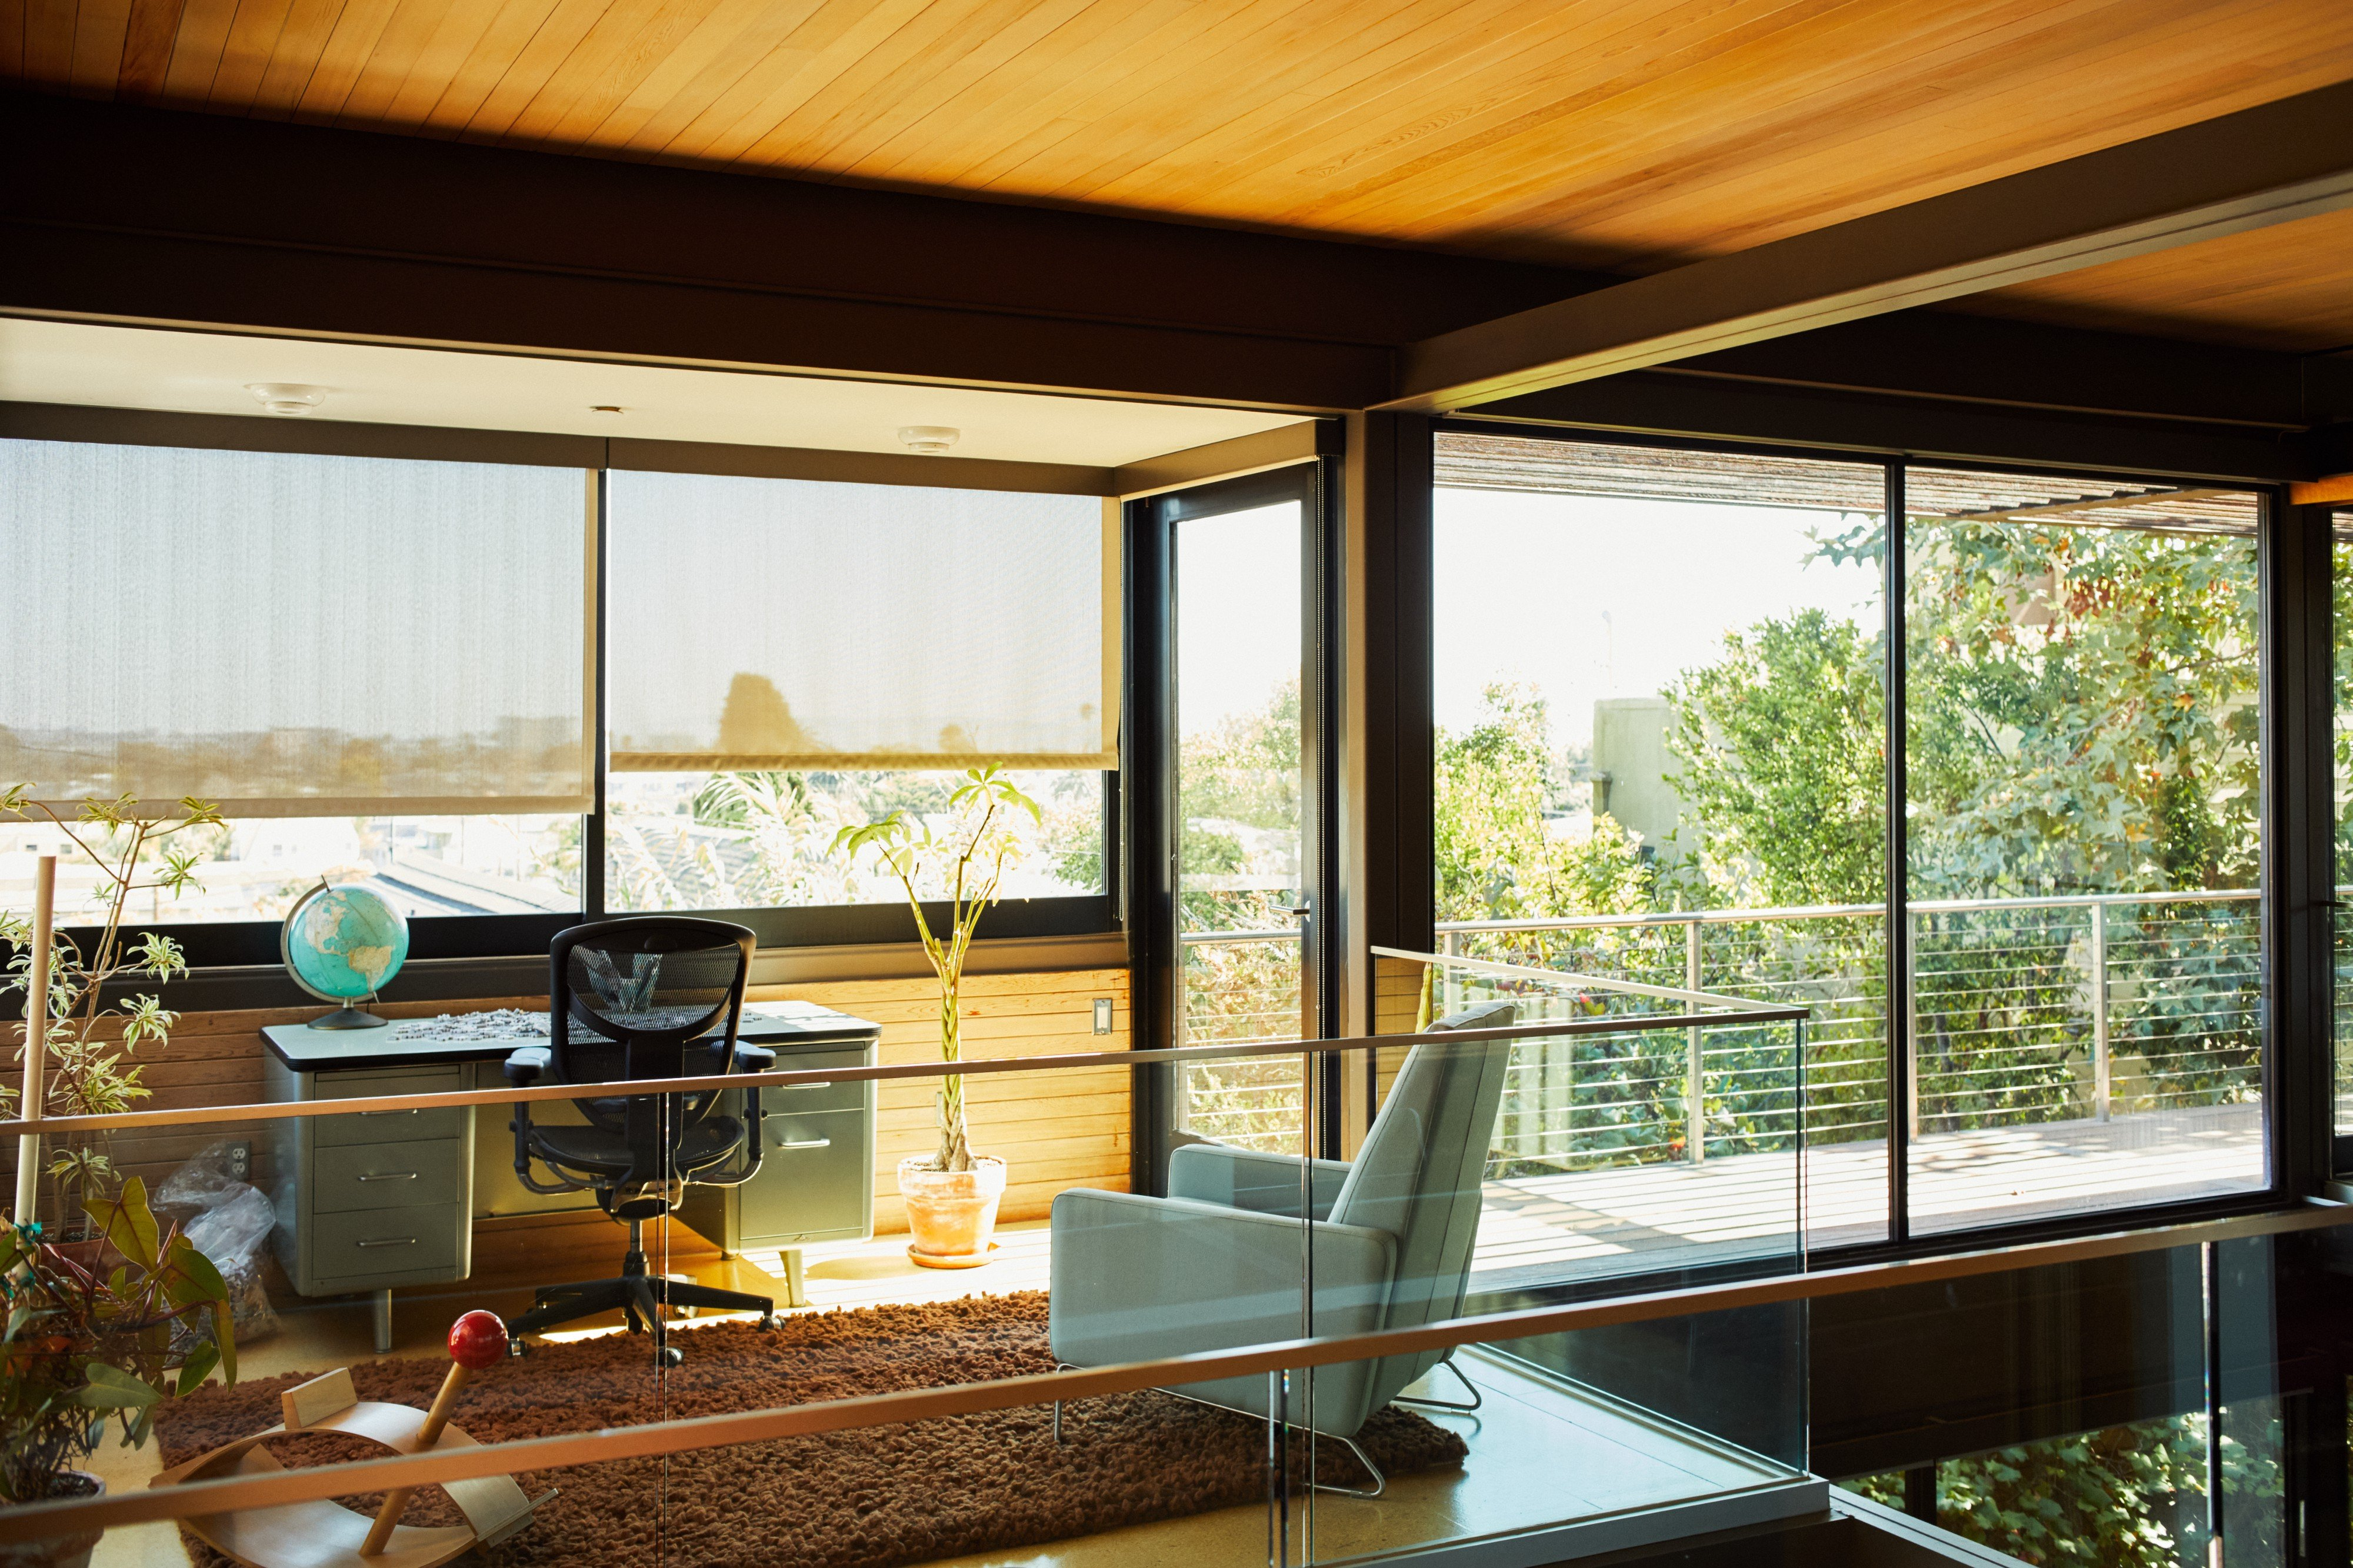 Plant Prefab's modular homes designed by famous California modernist Ray Kappe—also the architect behind Glenn's reconfigurable home pictured here—sell for over a million dollars.